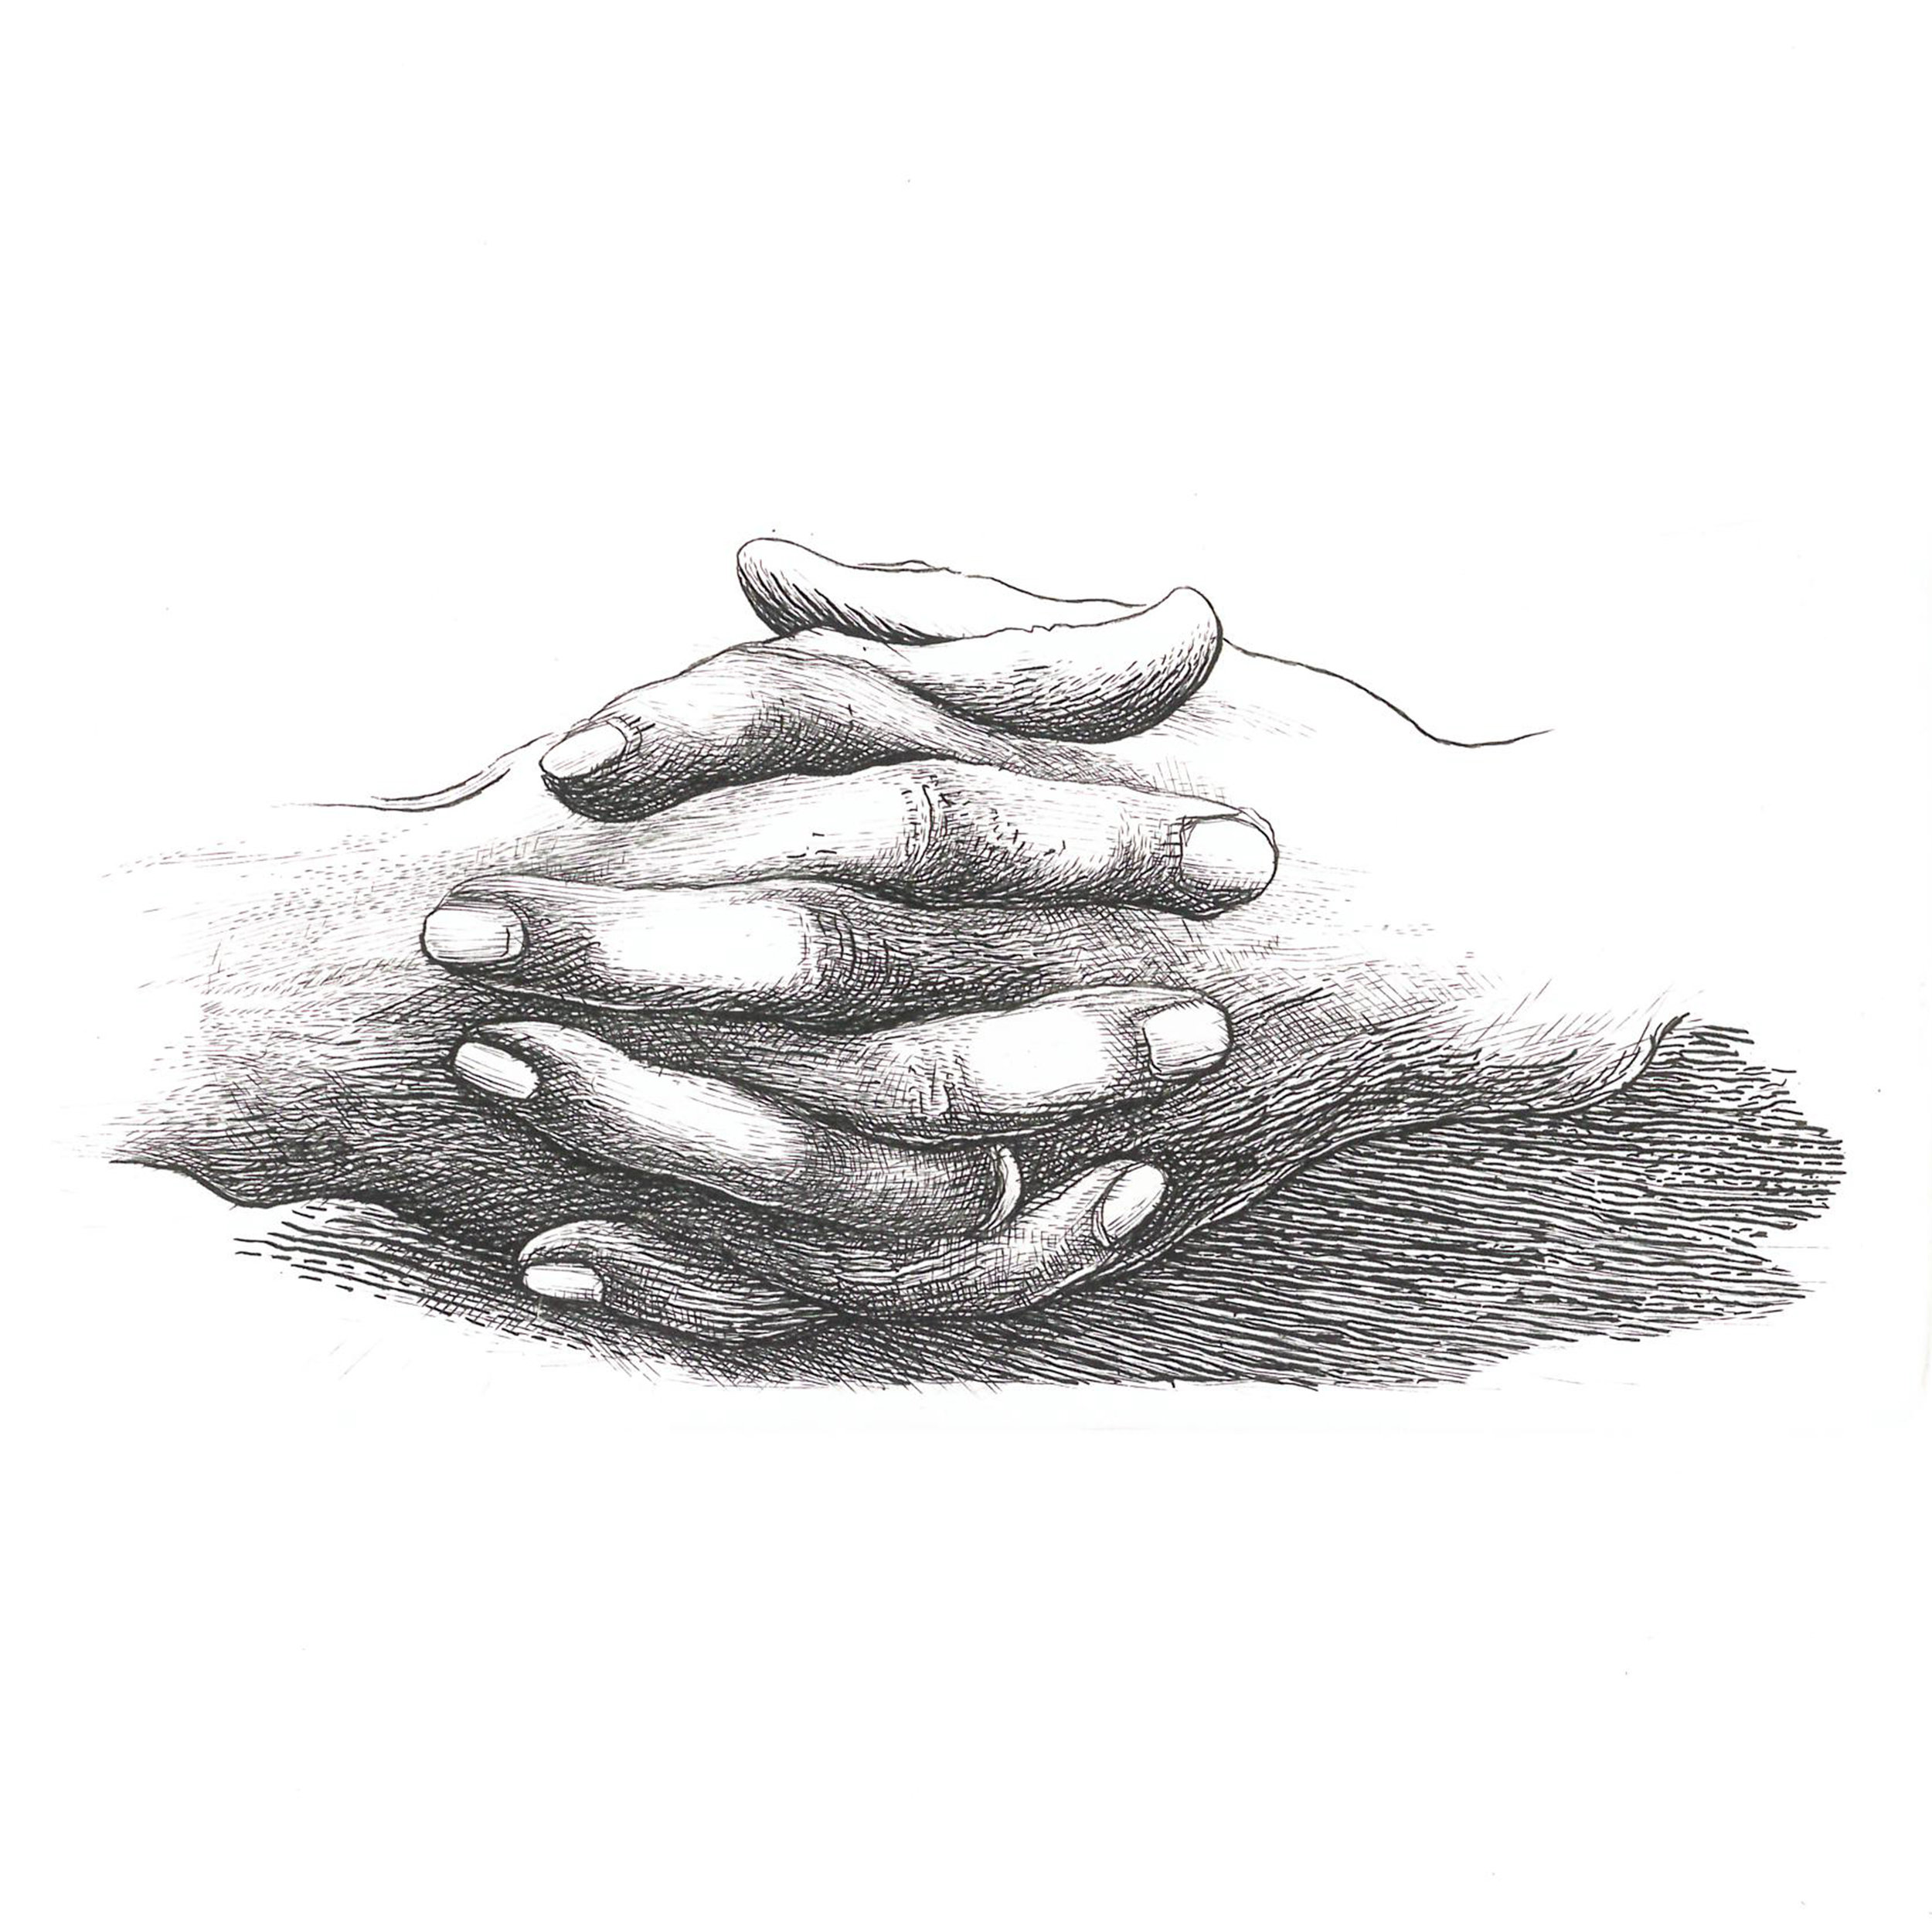 Clasped Hands (2019)